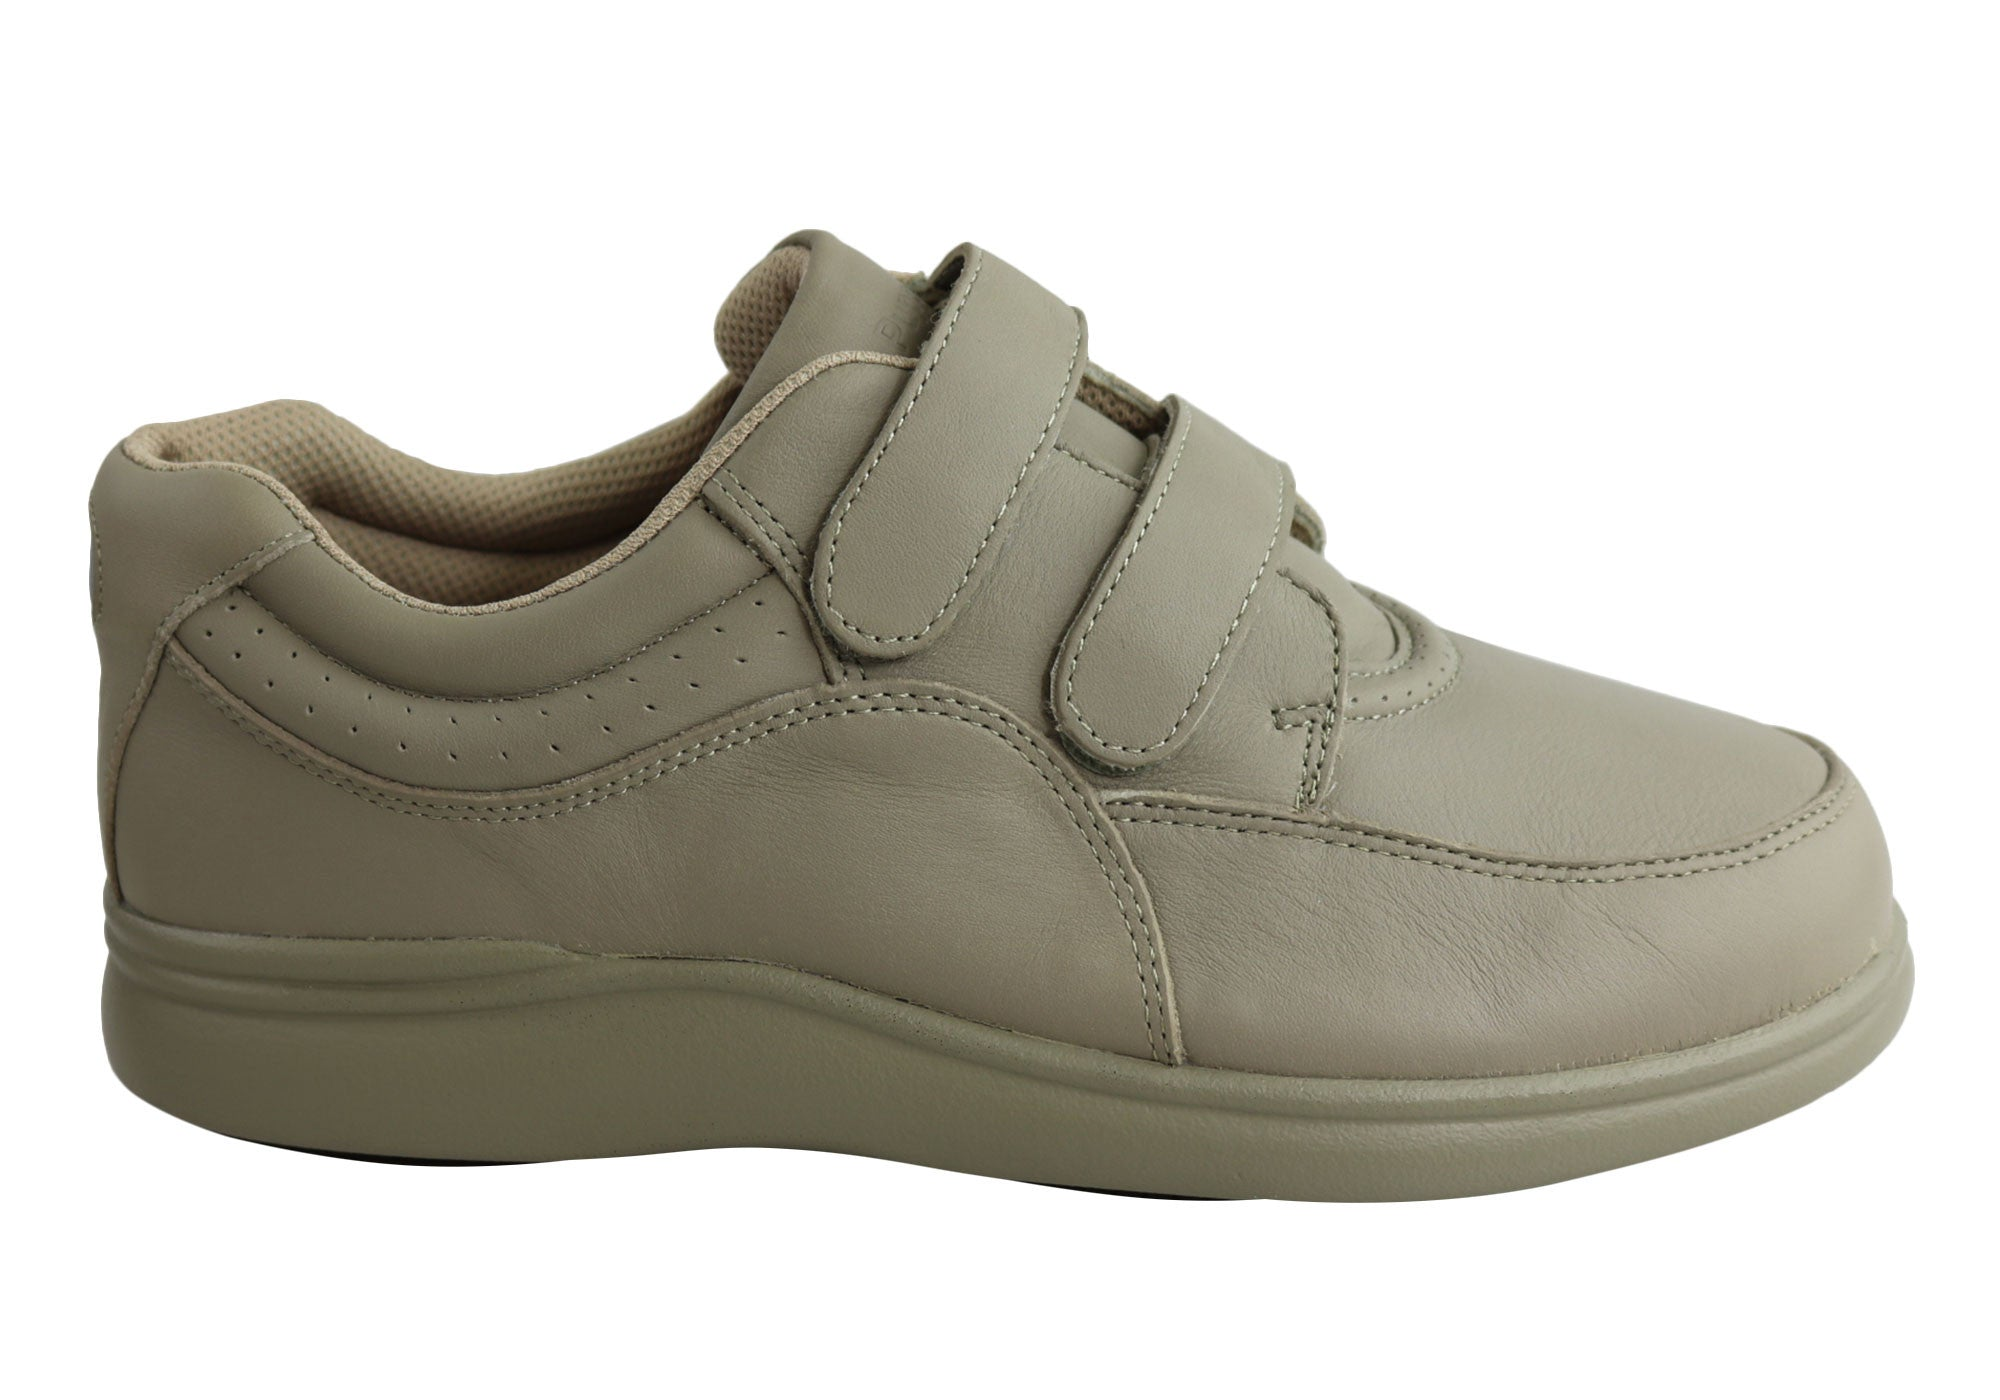 Hush Puppies Power Walker Ii Womens Leather Wide Velcro Shoes